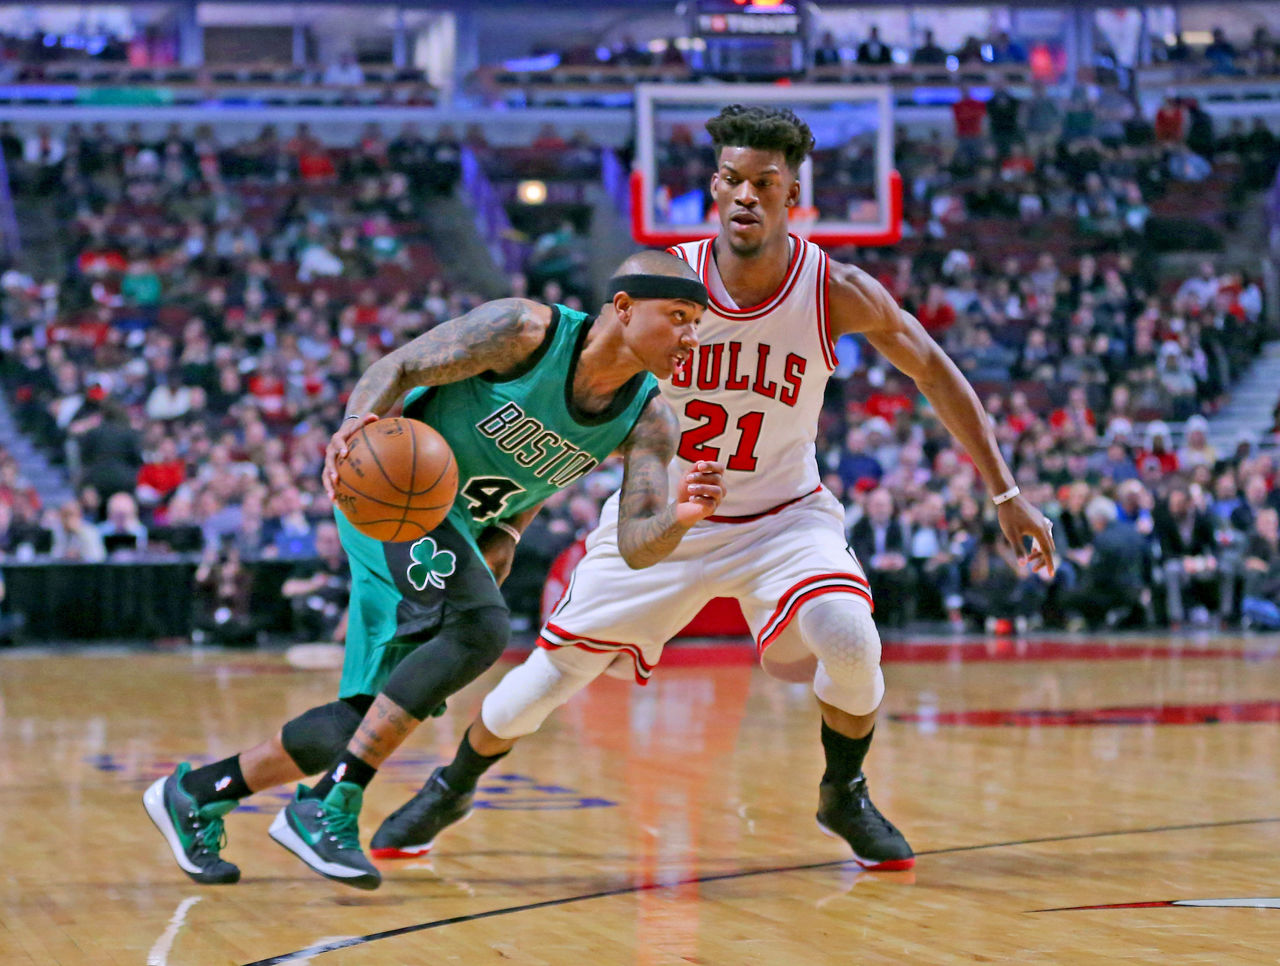 Cropped 2017 02 17t013307z 1394145253 nocid rtrmadp 3 nba boston celtics at chicago bulls